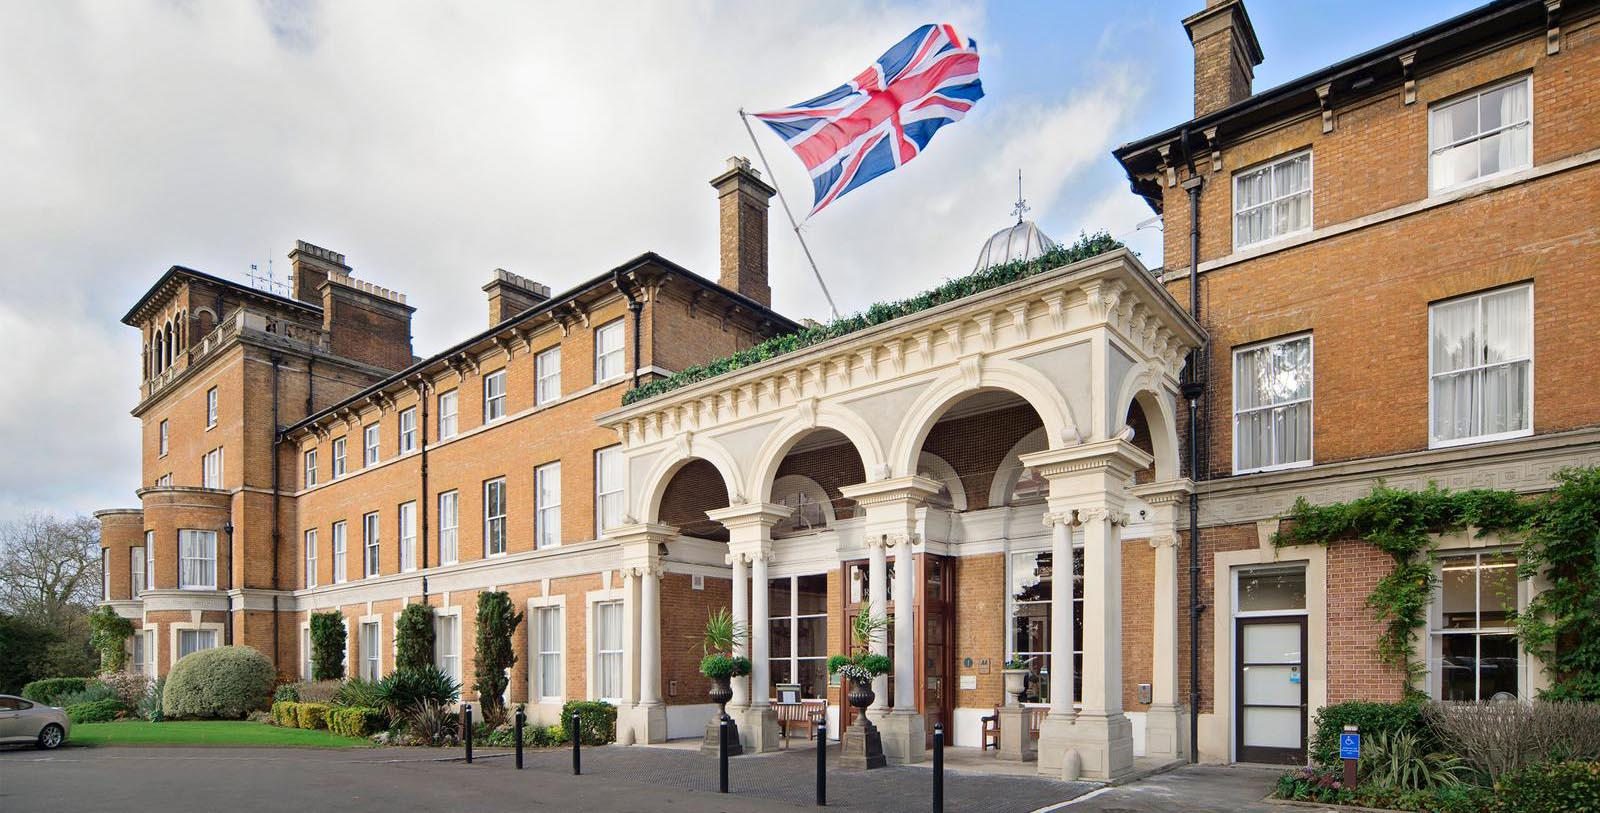 Image of Hotel Exterior Oatlands Park Hotel, 1856, Member of Historic Hotels Worldwide, in Weybridge, England, Discover